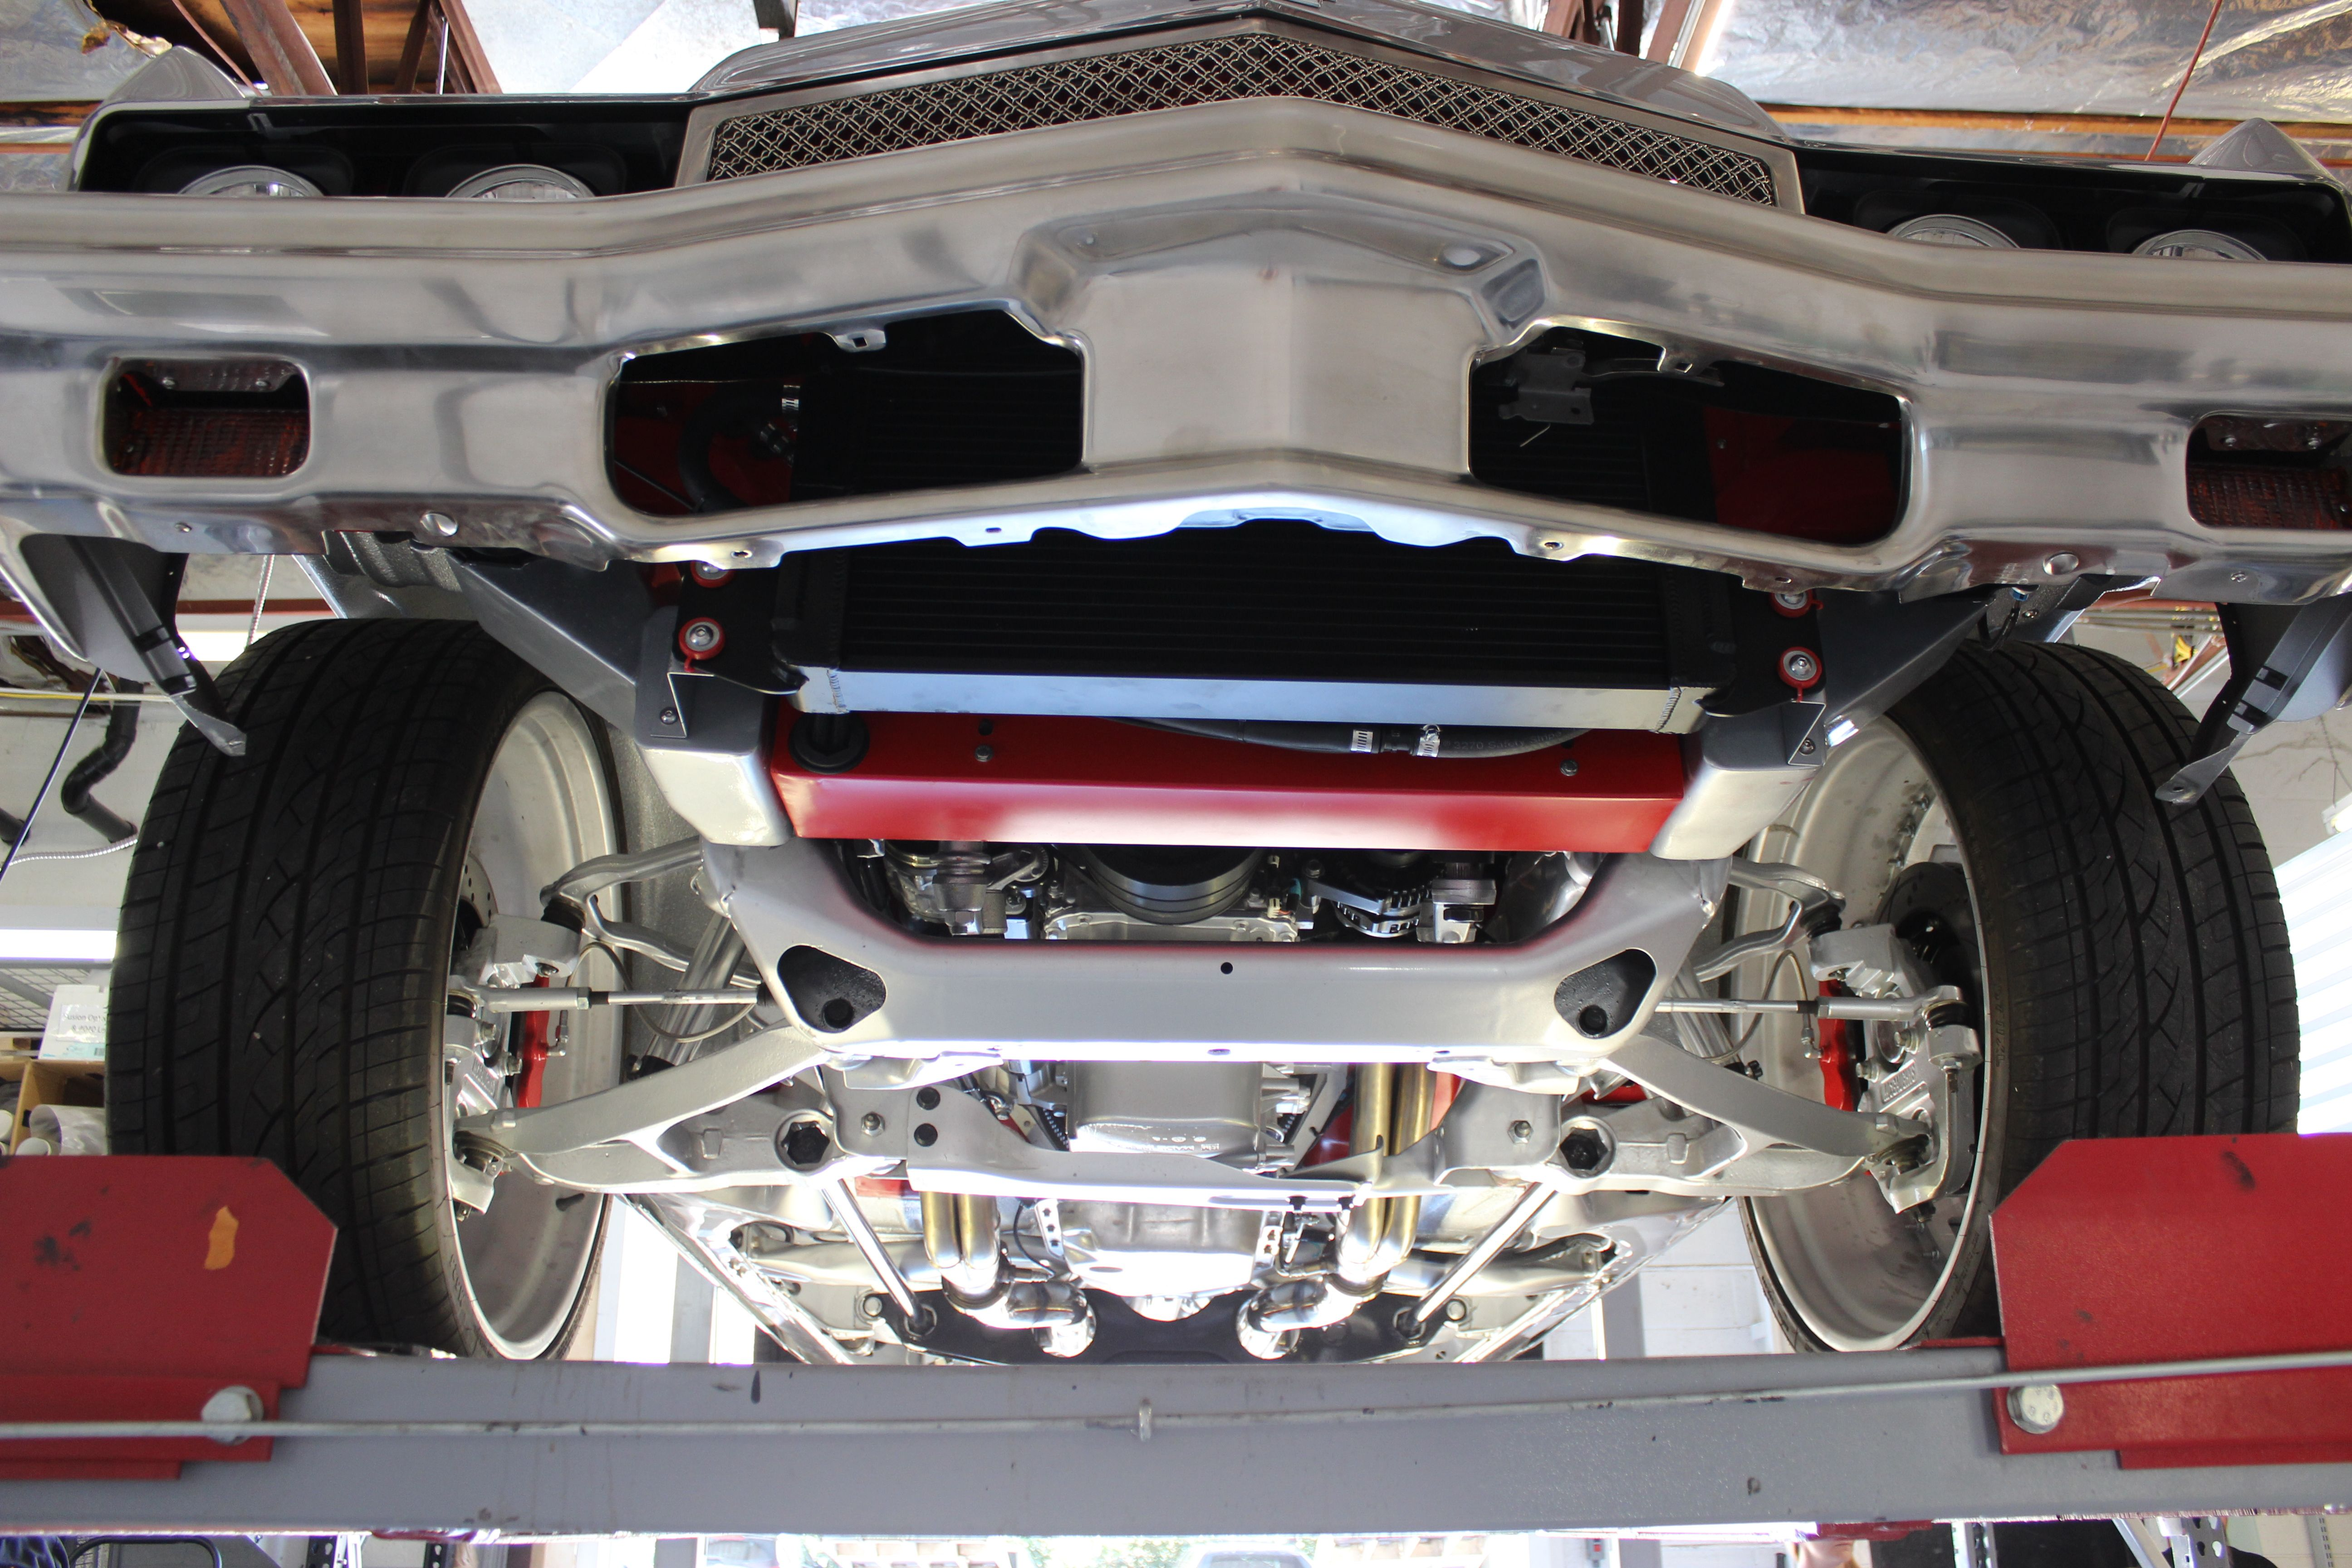 The Automotive Lift Light Kit by Inspired LED provides the